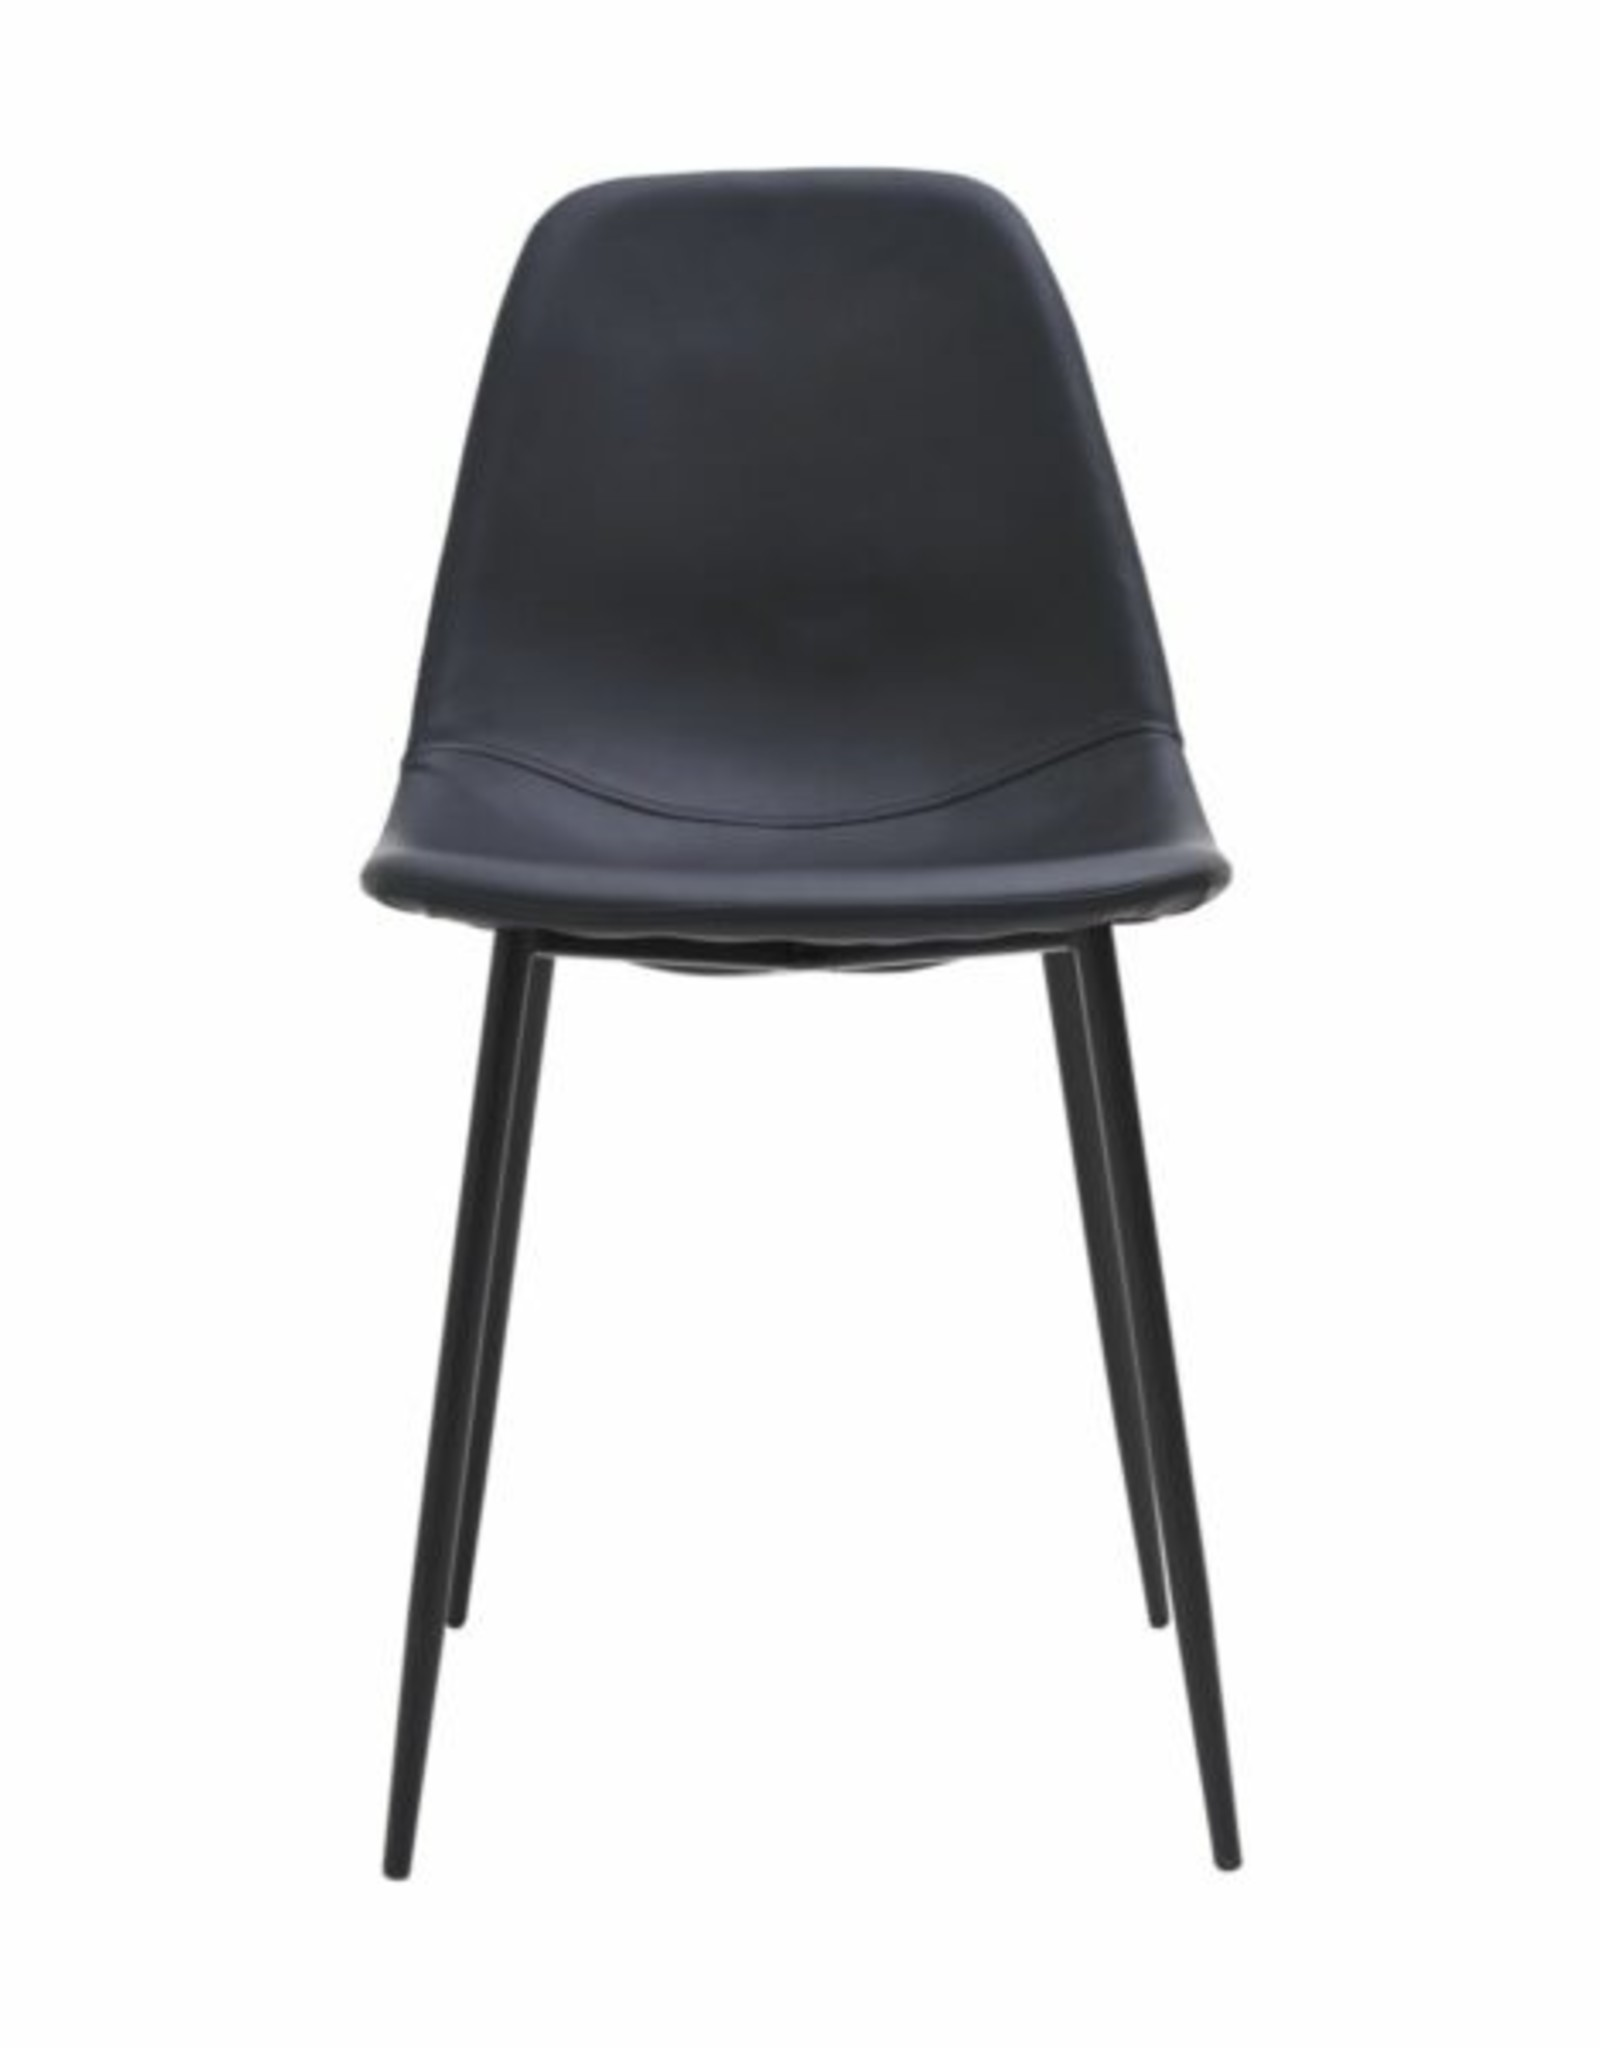 Chair forms black 43x53